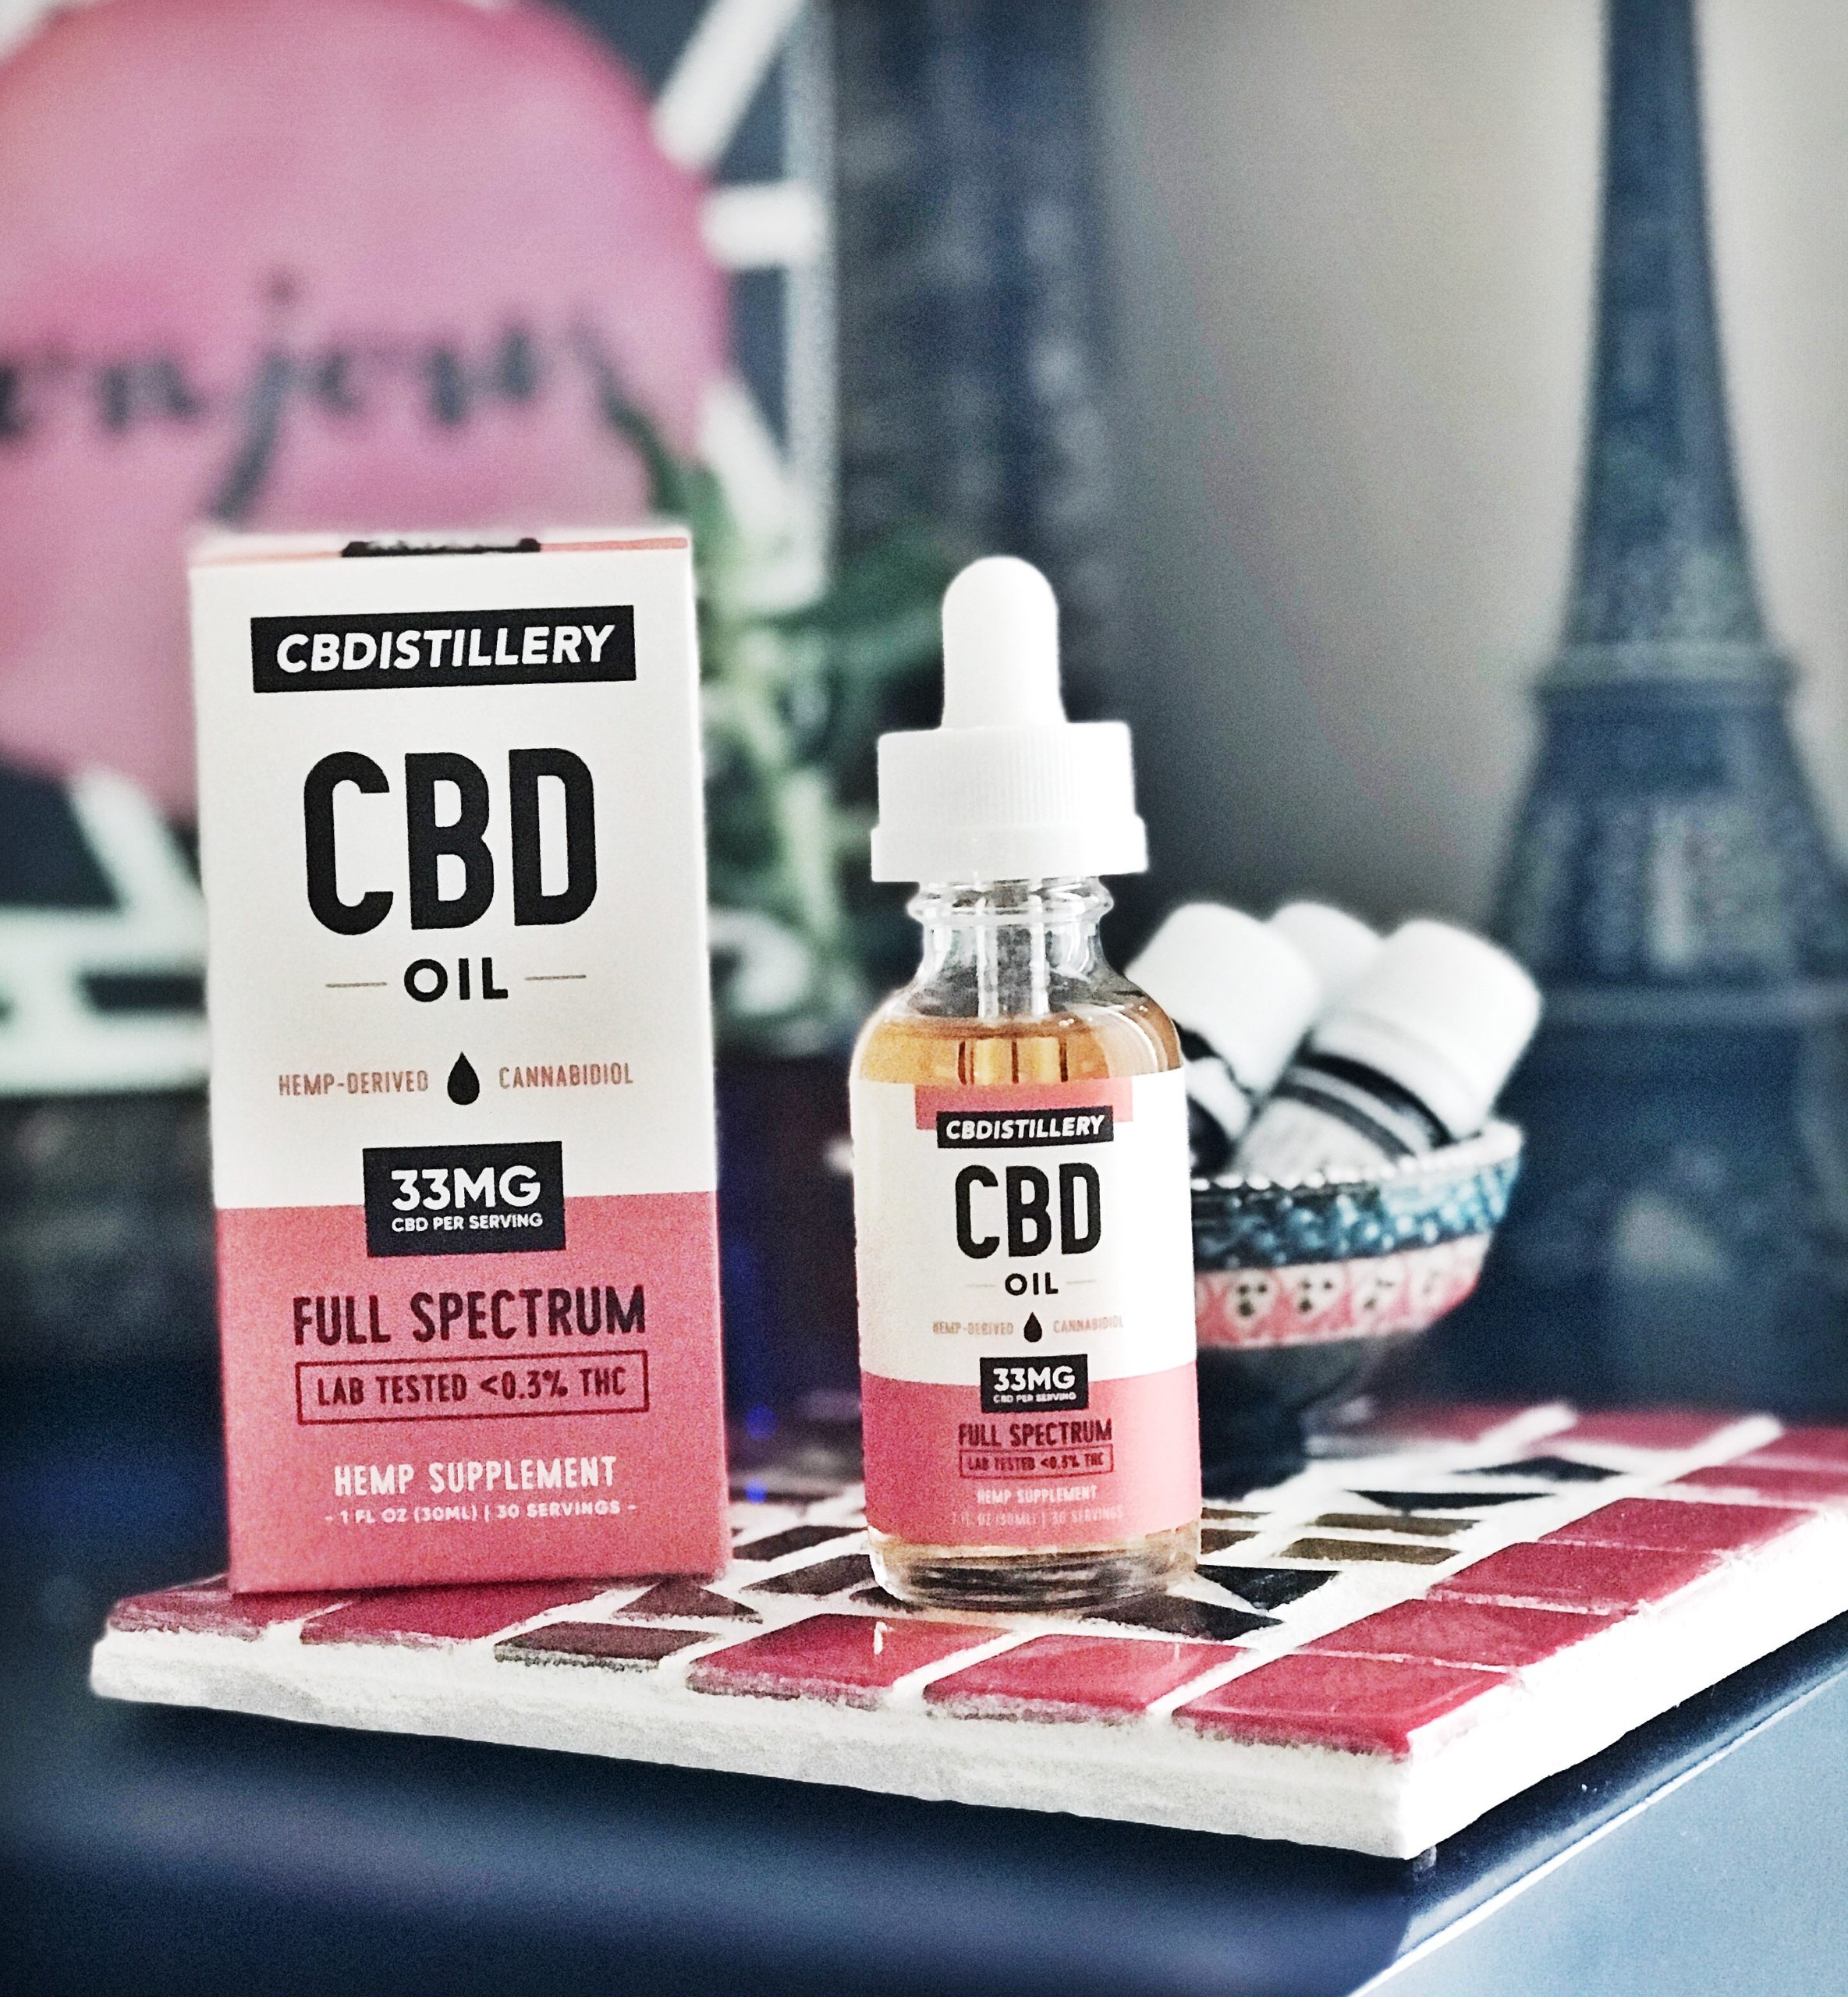 CBD Oil, CBDistillery, Anxiety